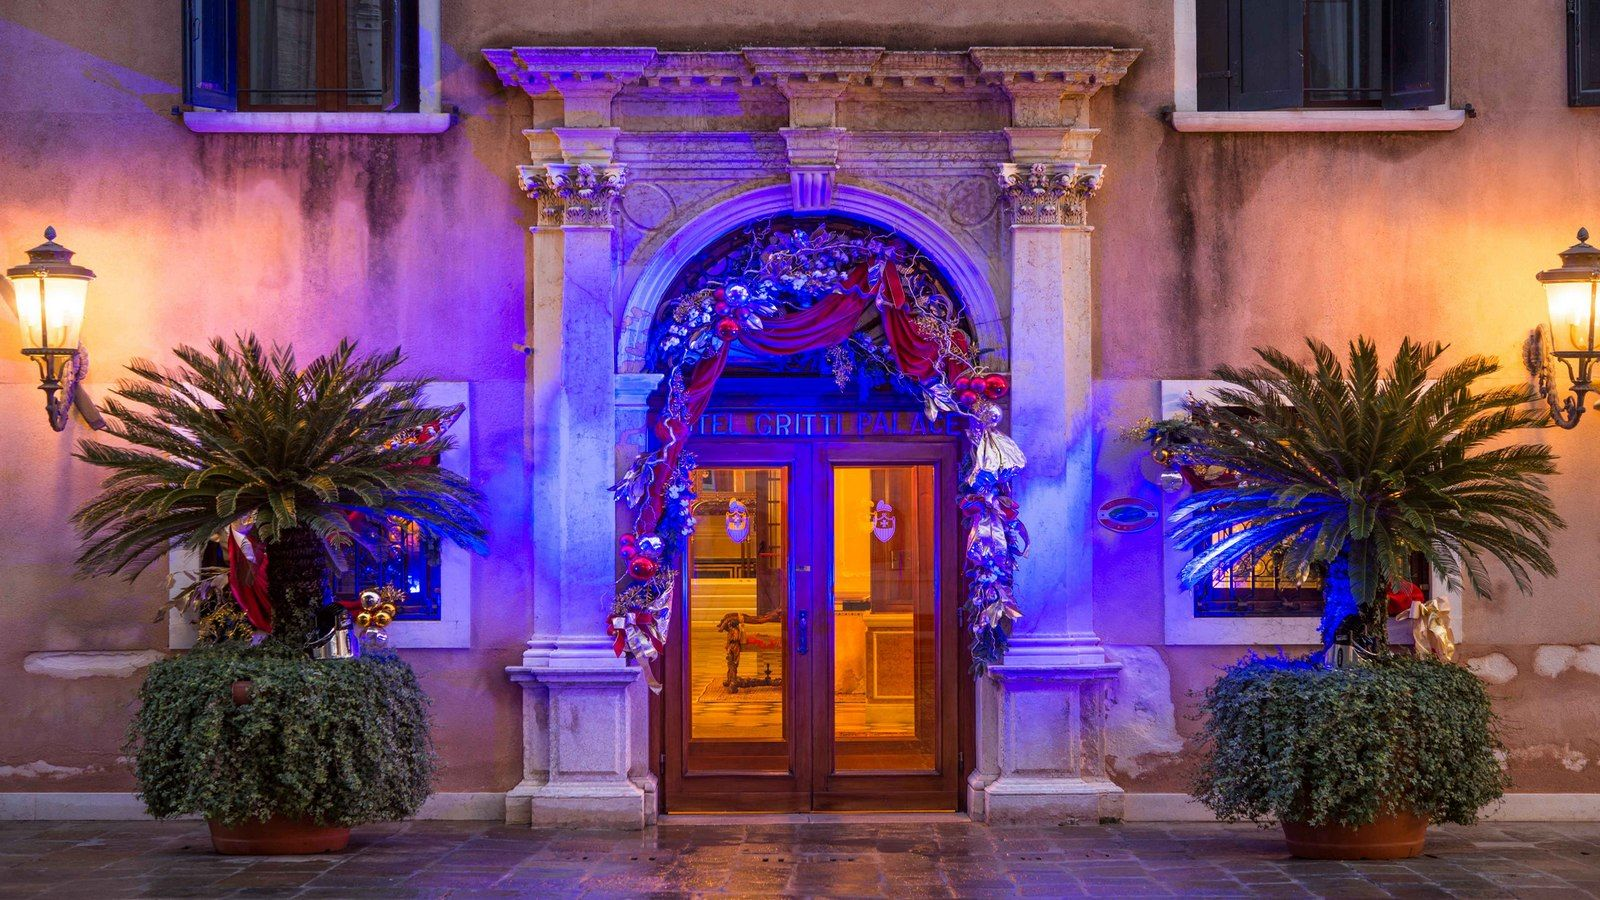 New Years Eve Gritti Palace entry